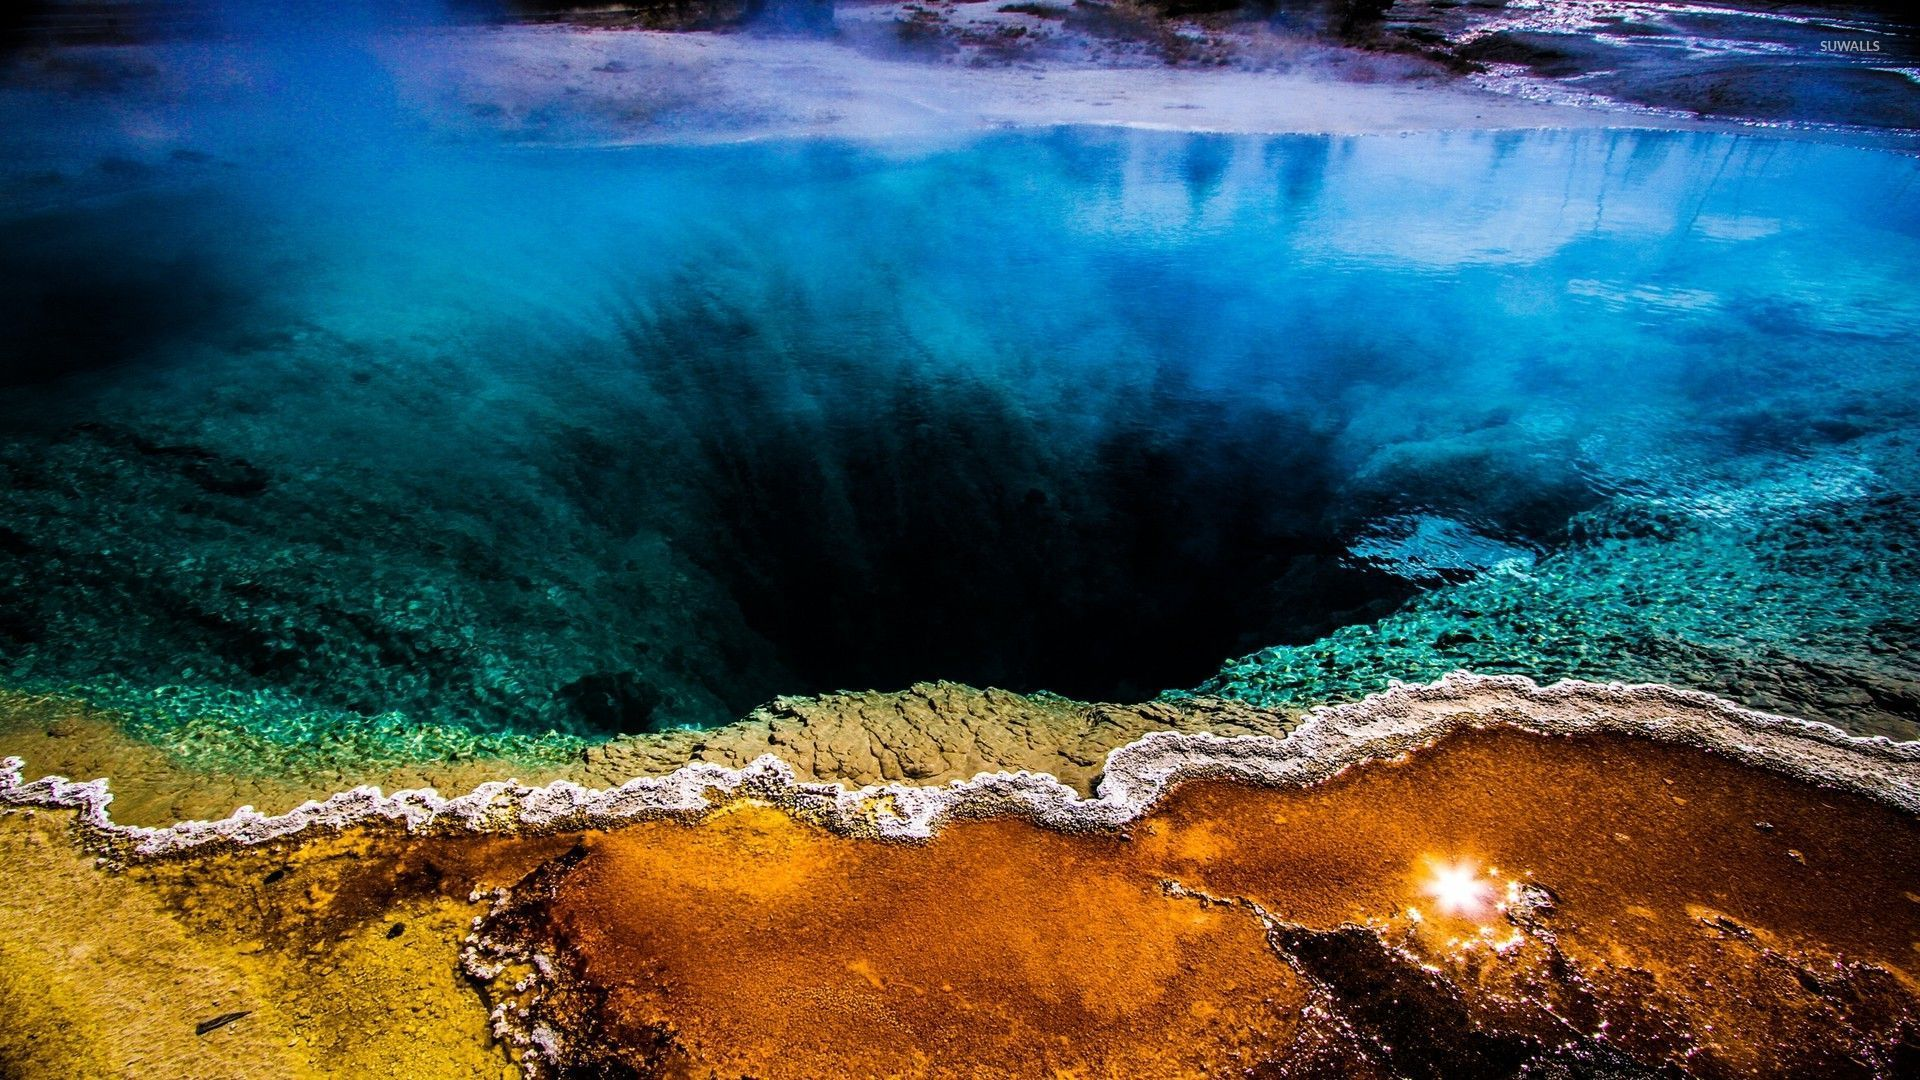 Yellowstone National Park wallpaper   Nature wallpapers   26779 1280x800